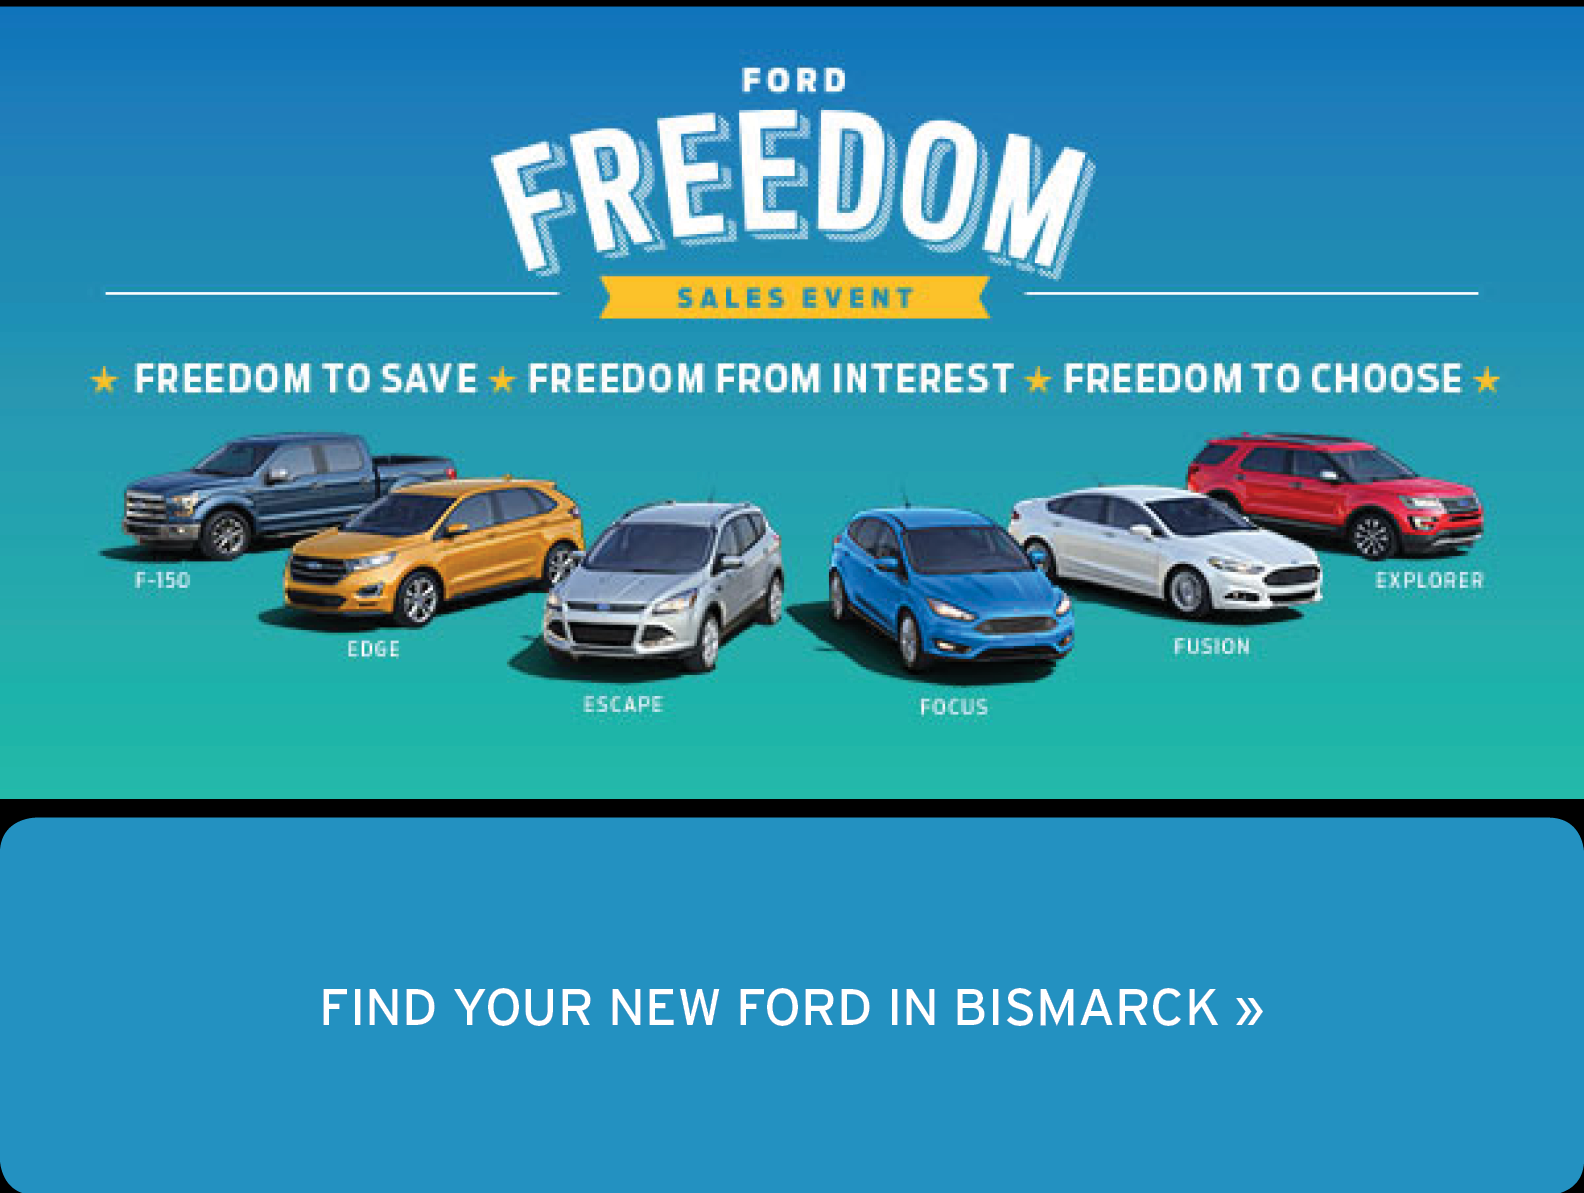 Freedom Sales Event Launched At Eide Ford Lincoln